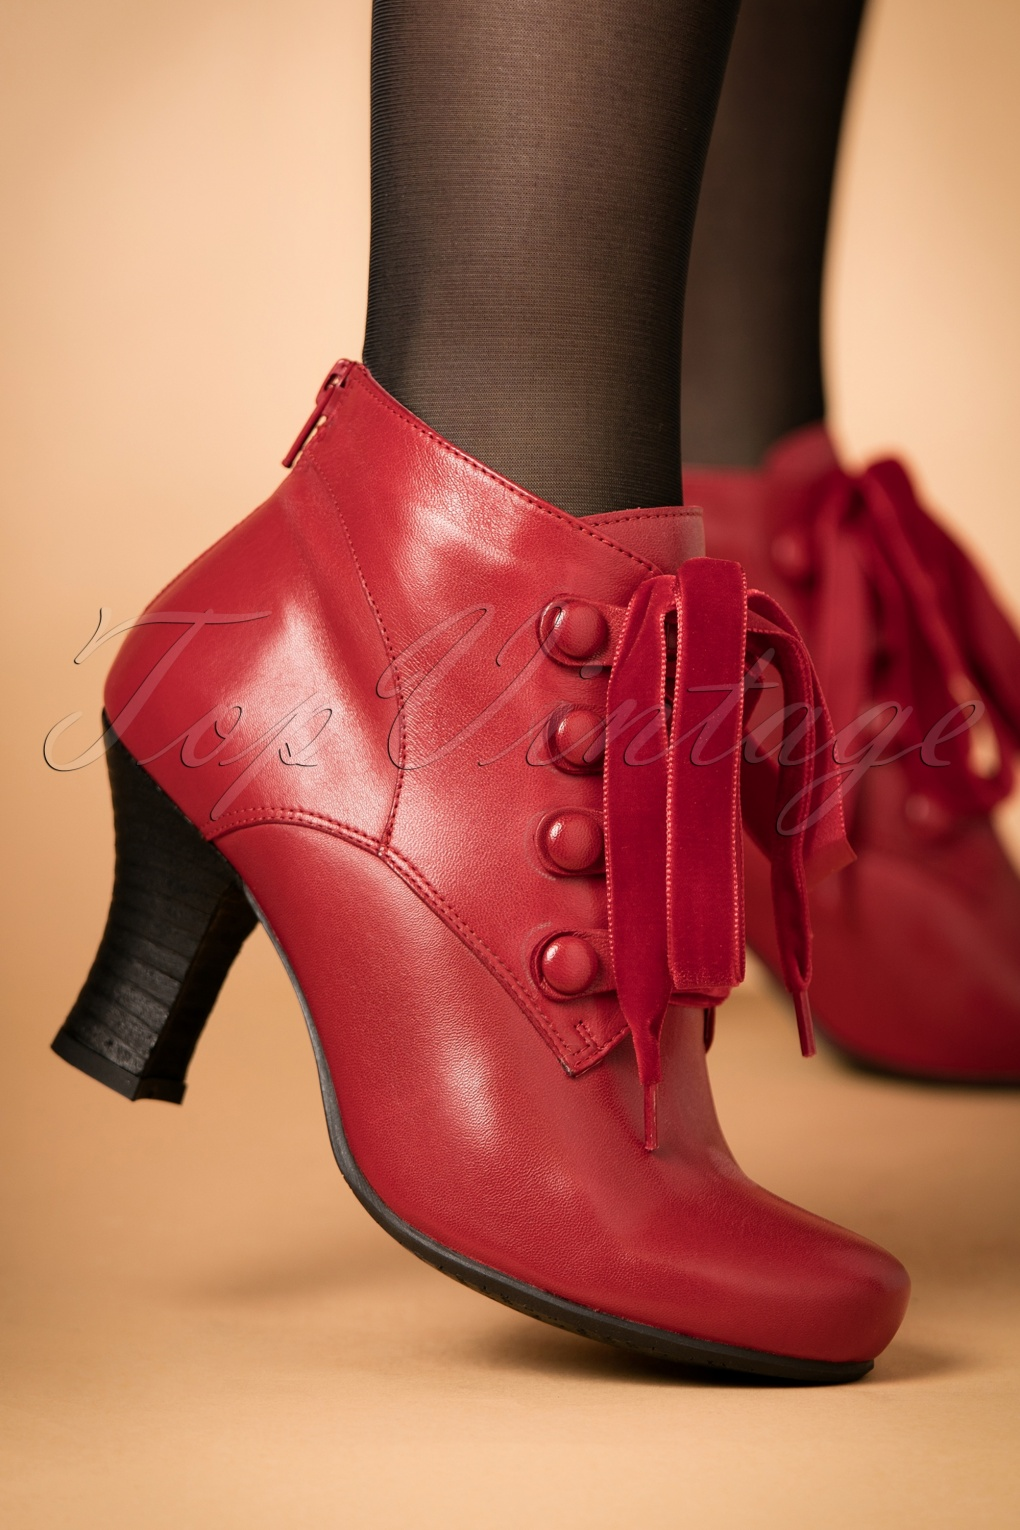 Retro Boots, Granny Boots, 70s Boots 40s Kathy Lace Up Leather Booties in Red £142.17 AT vintagedancer.com